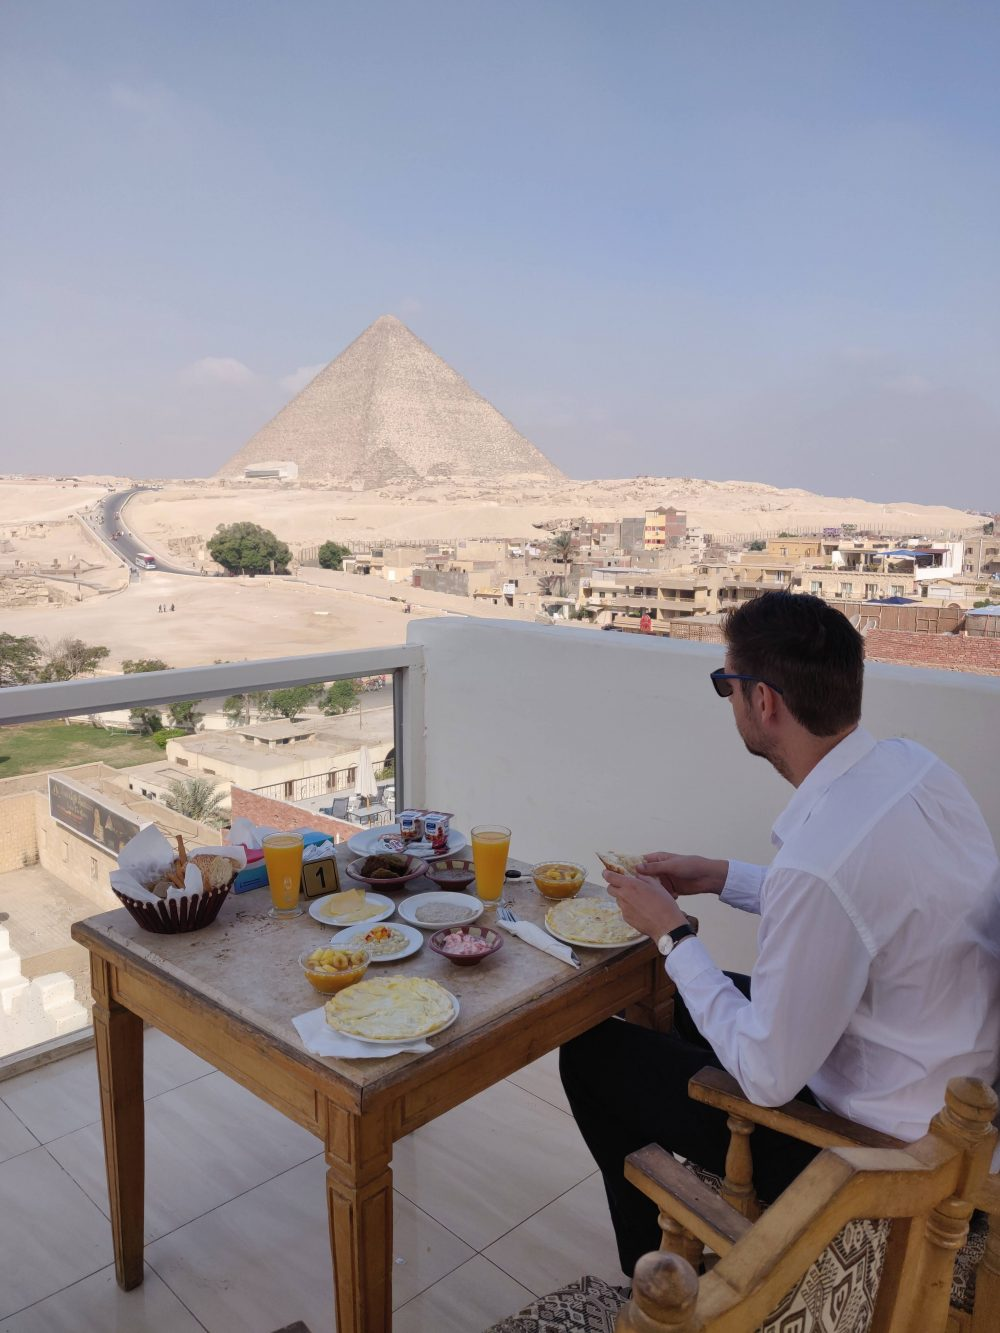 Where to stay in Egypt - Here was our breakfast table in Giza, Cairo.